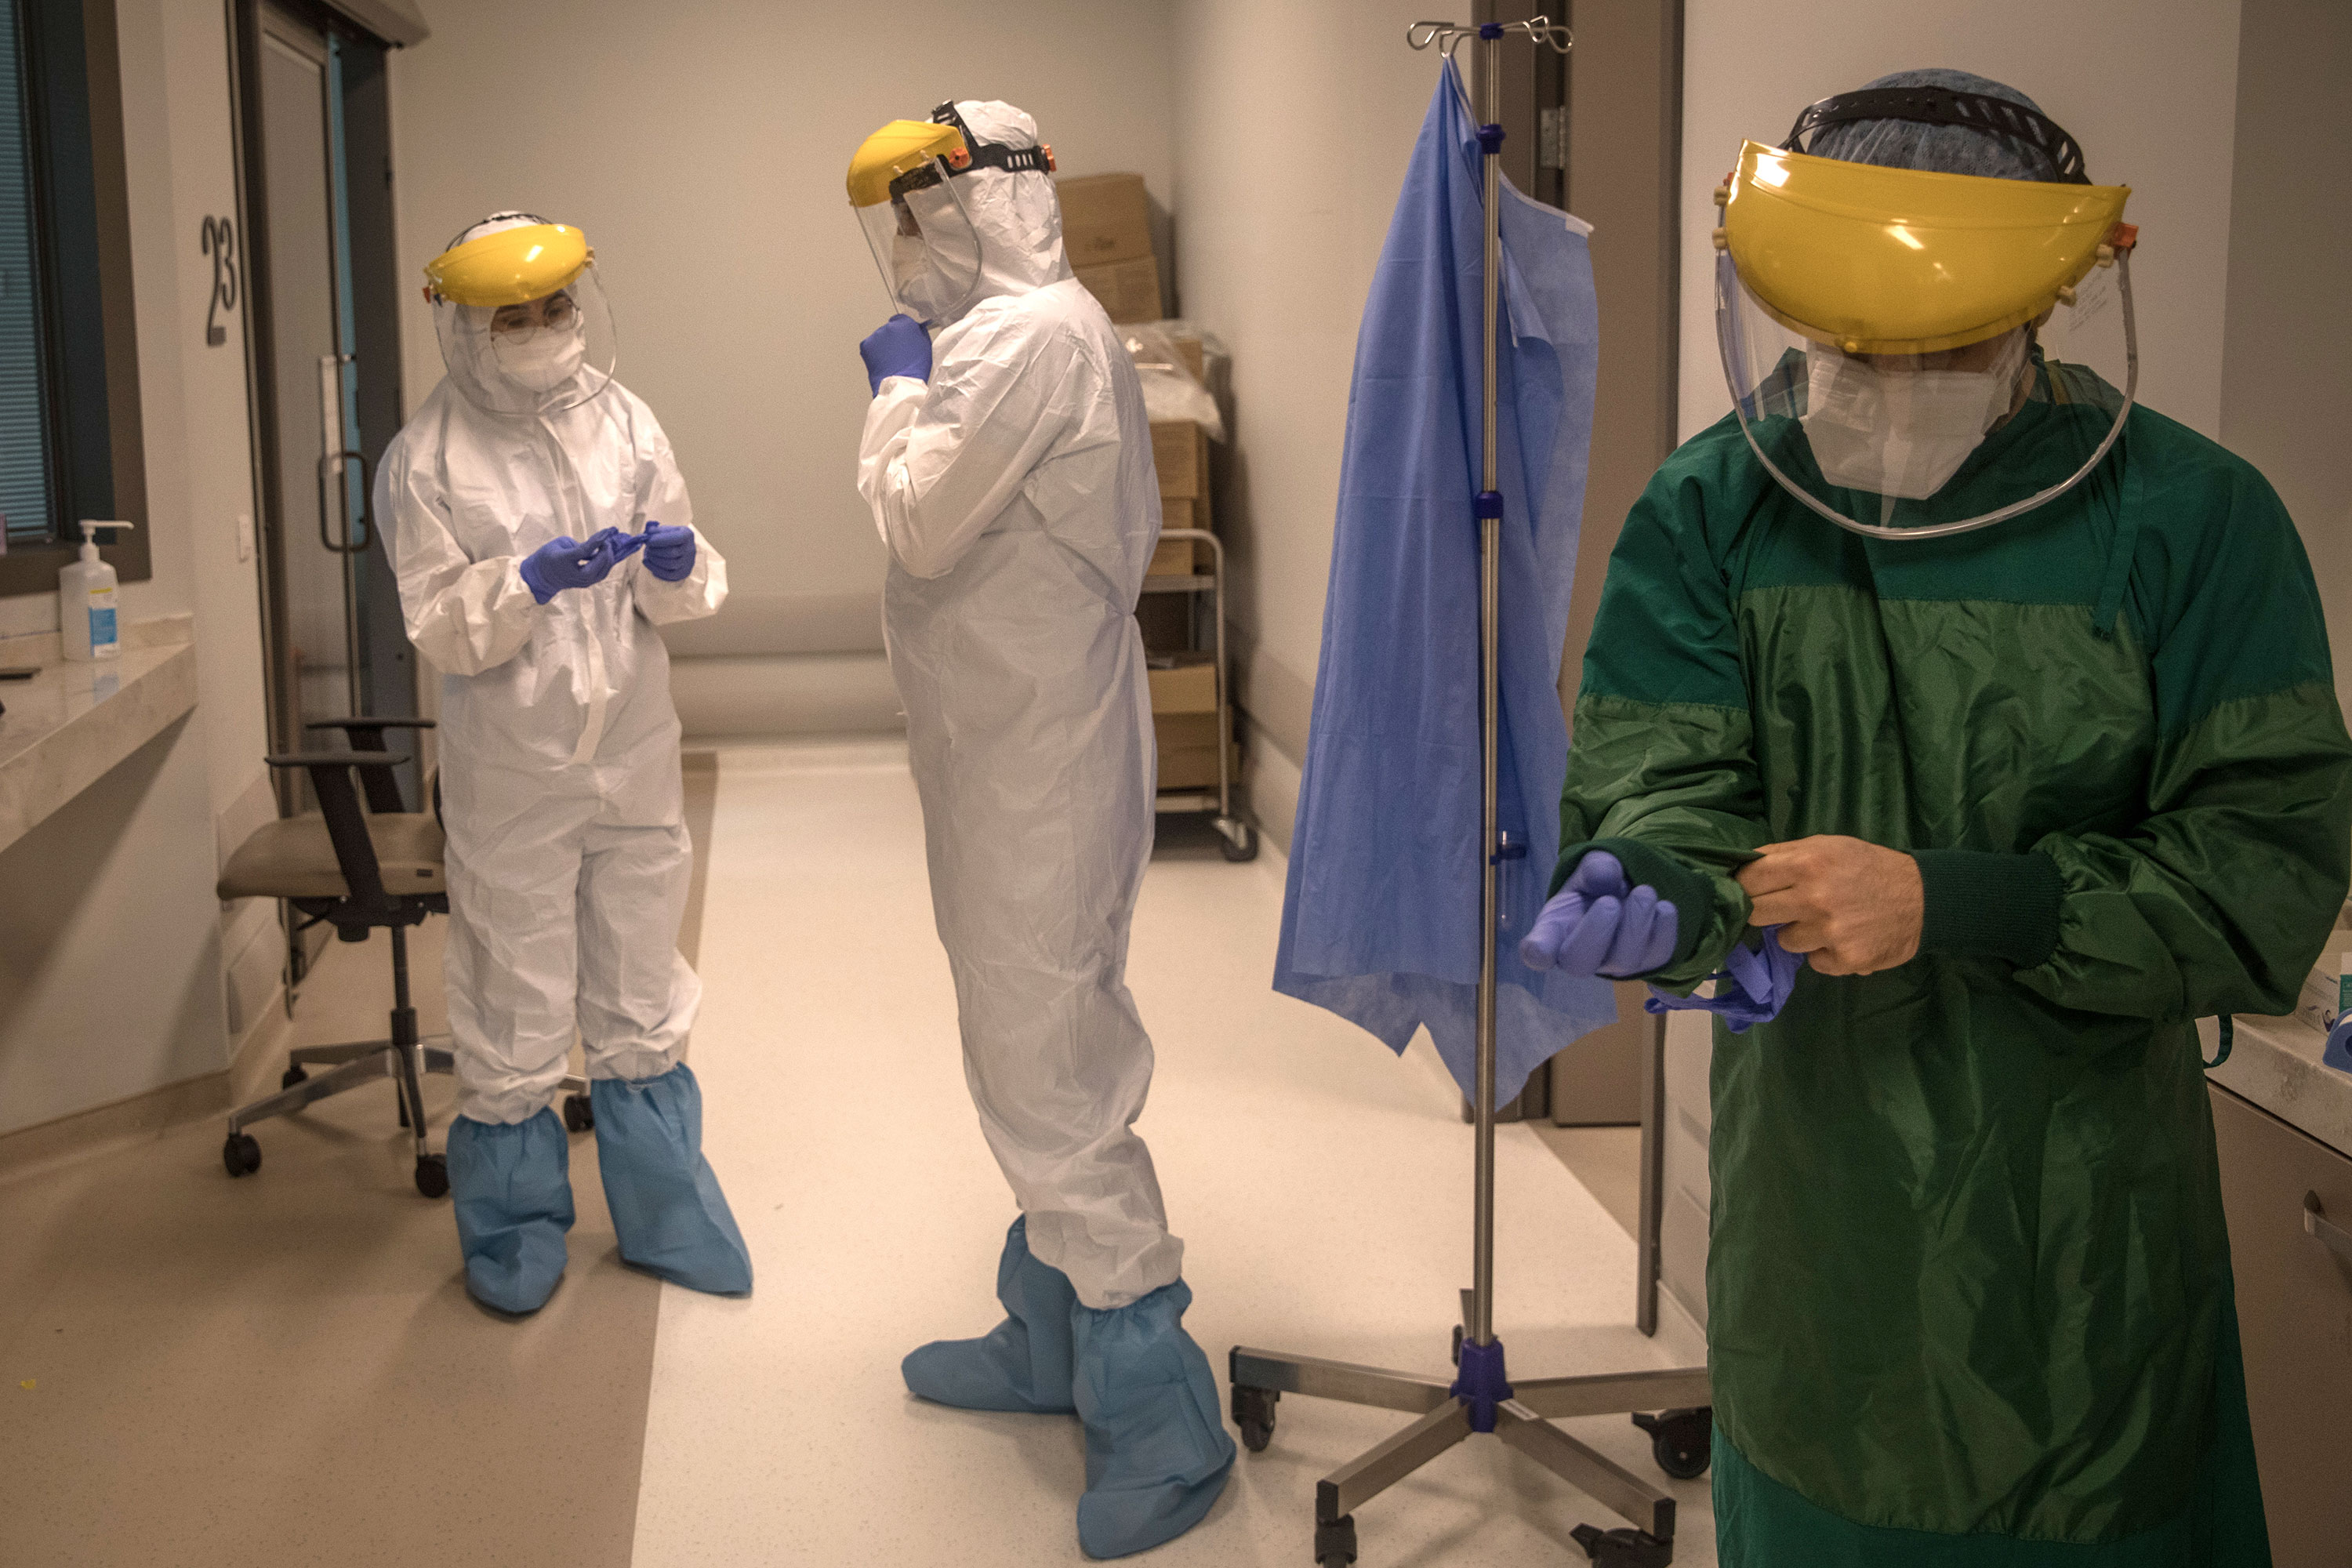 An assistant doctor and nurses prepare to perform a procedure on a patient infected with Covid-19 at the Acibadem Altunizade Hospital on April 20, in Istanbul, Turkey.